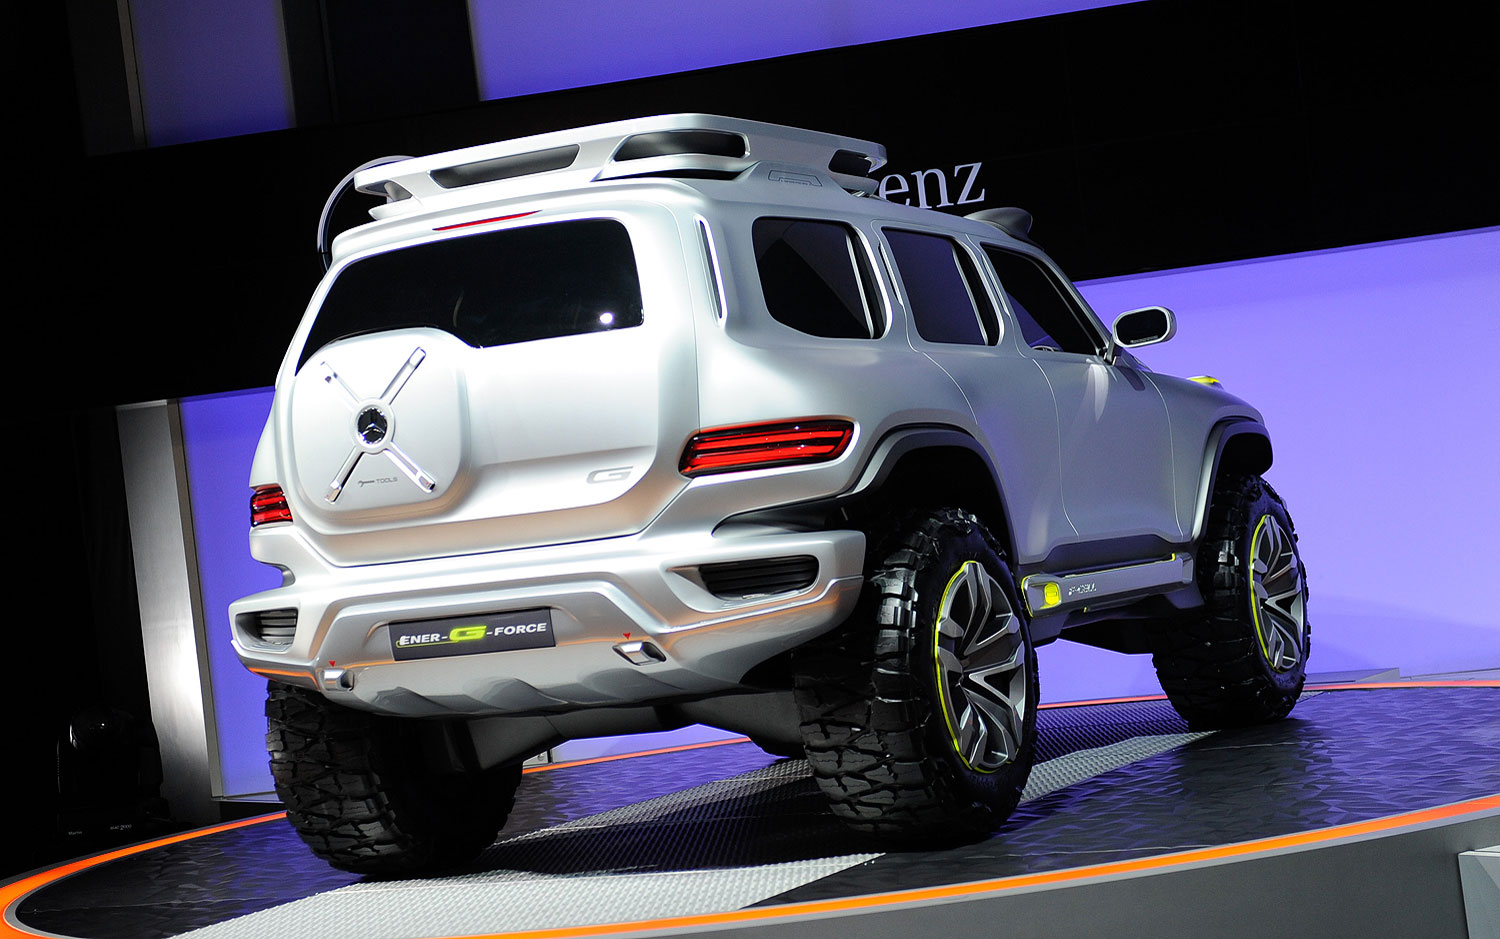 Sls Black Series >> Cars Model 2013 2014: Mercedes Unveils Ener-G-Force